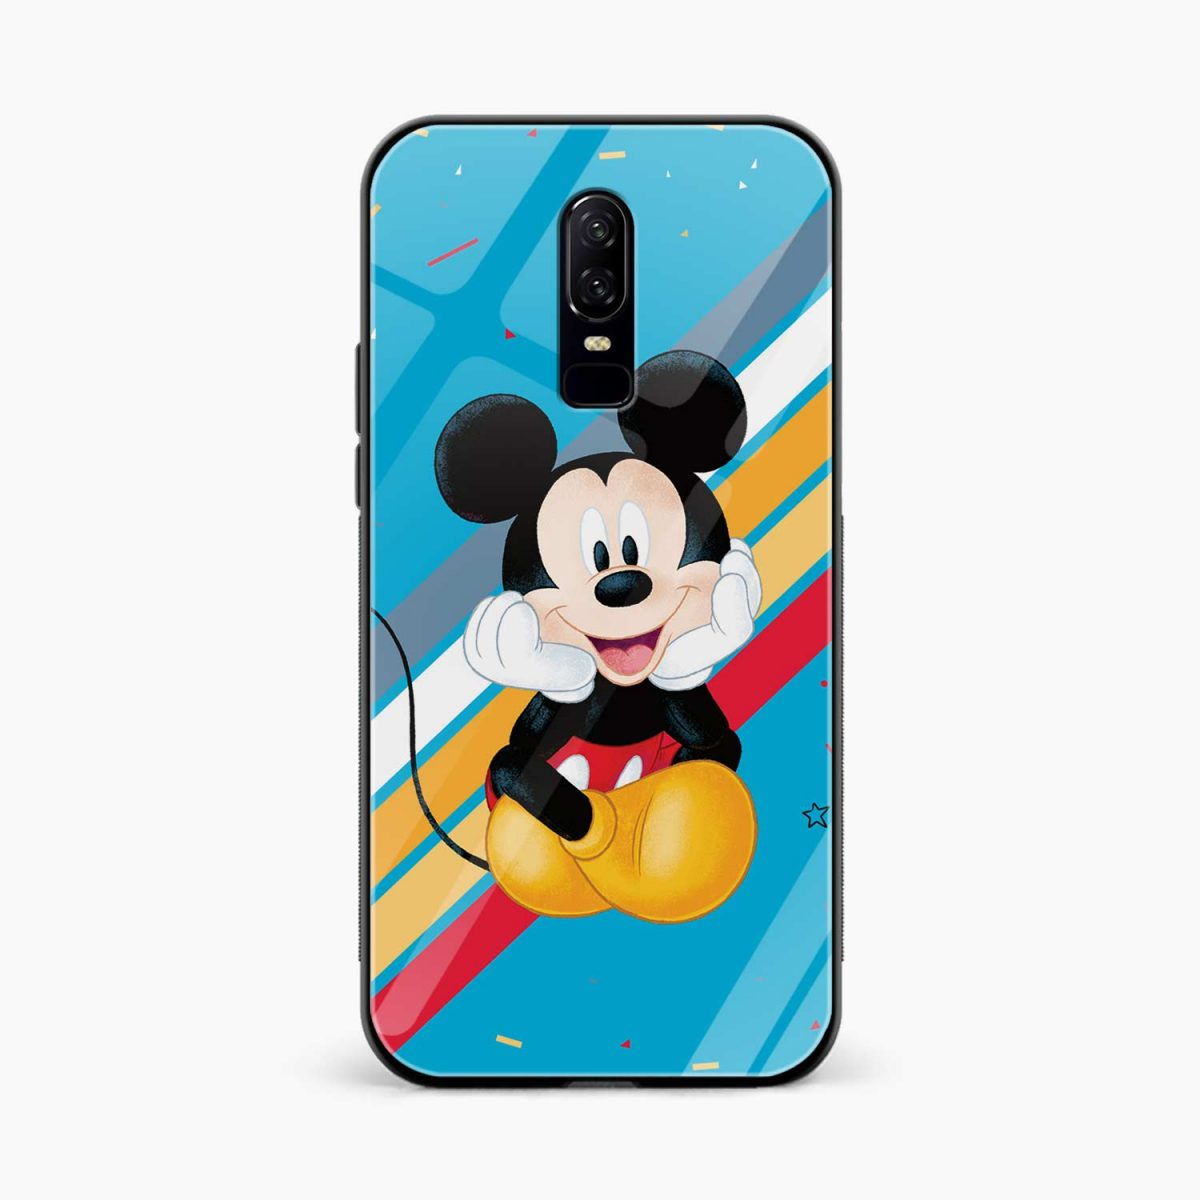 quirky mickey mouse front view oneplus 6 back cover